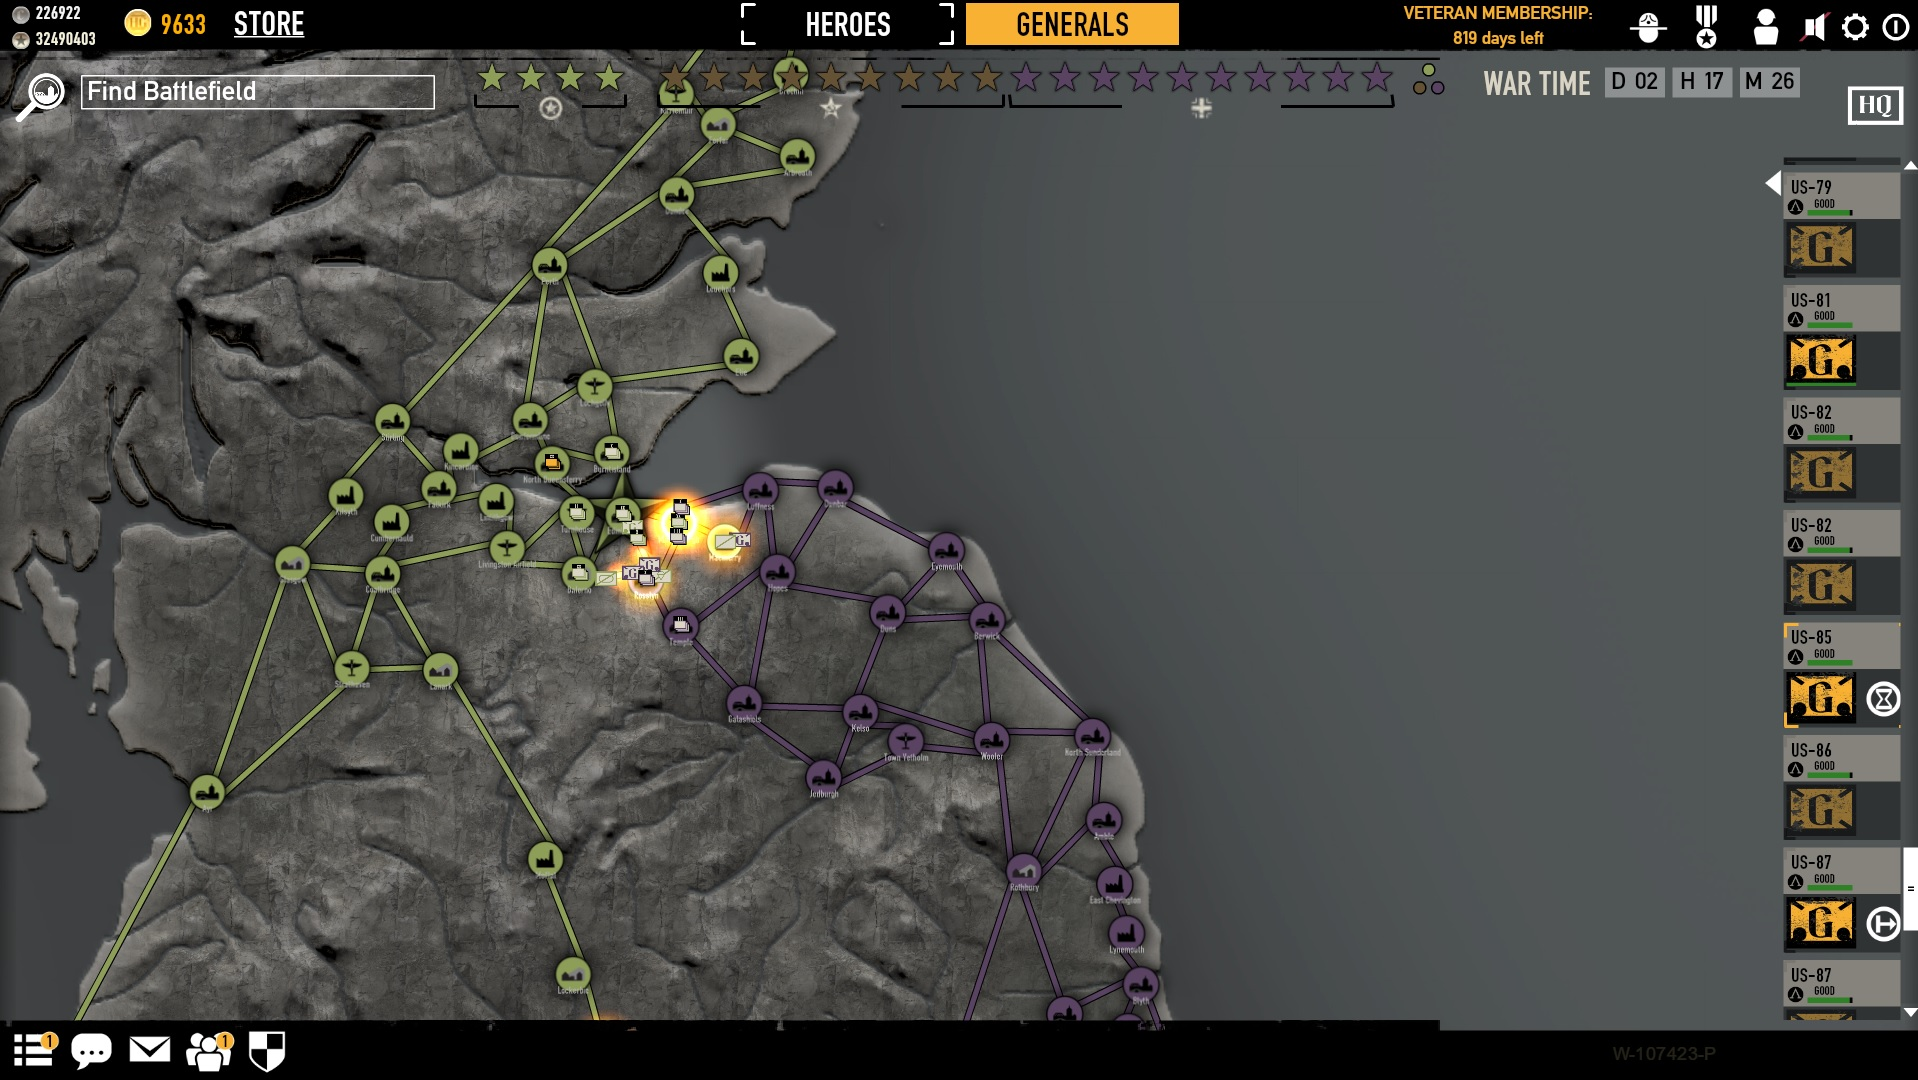 how to join a game in heroes and generals